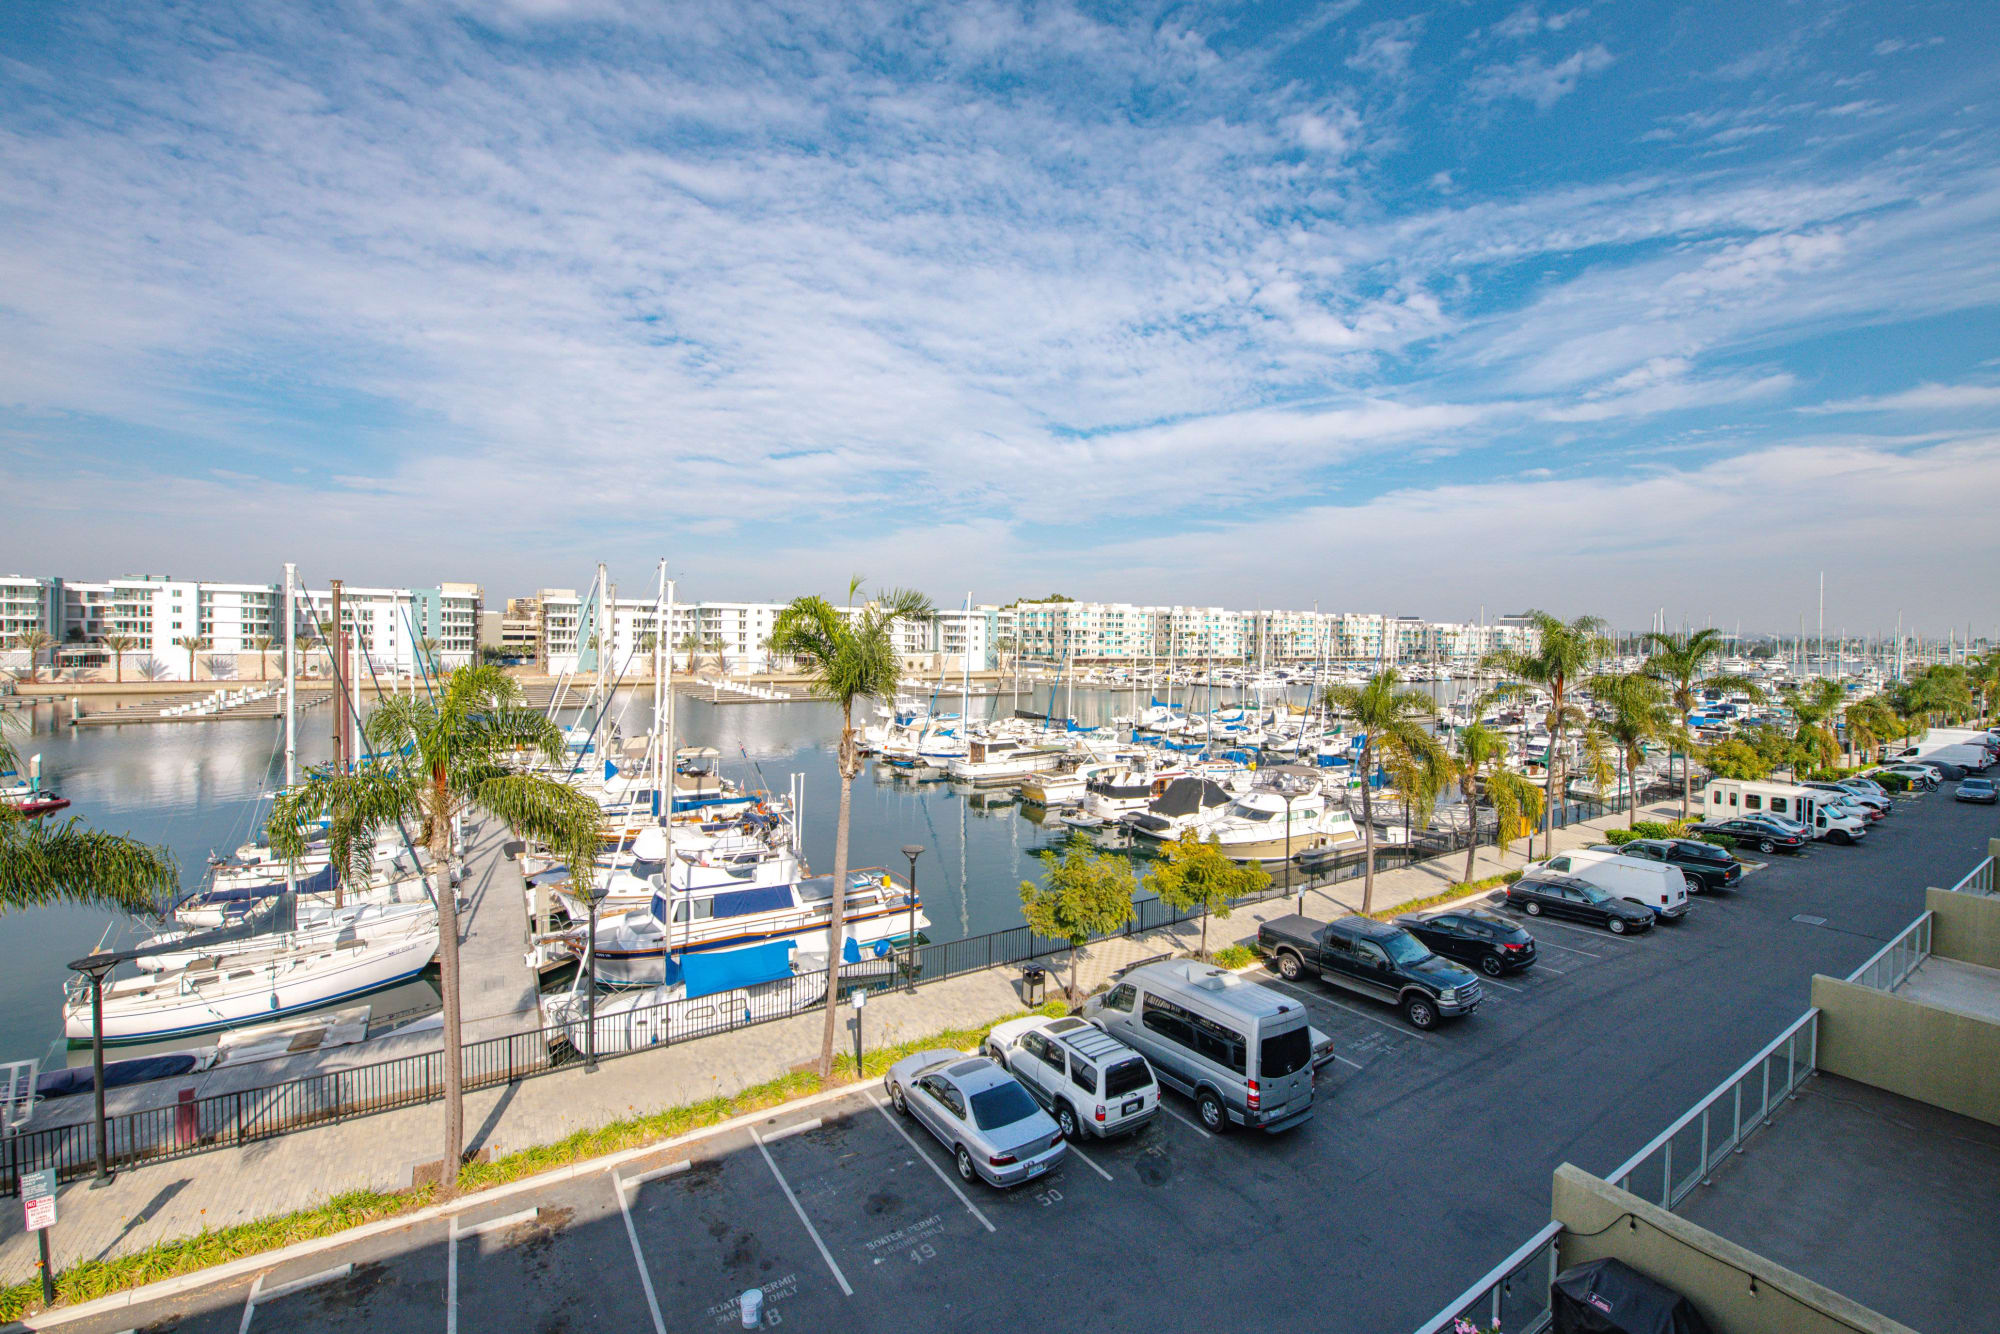 A view of the marina from the rooftop lounge at Harborside Marina Bay Apartments in Marina del Rey, California